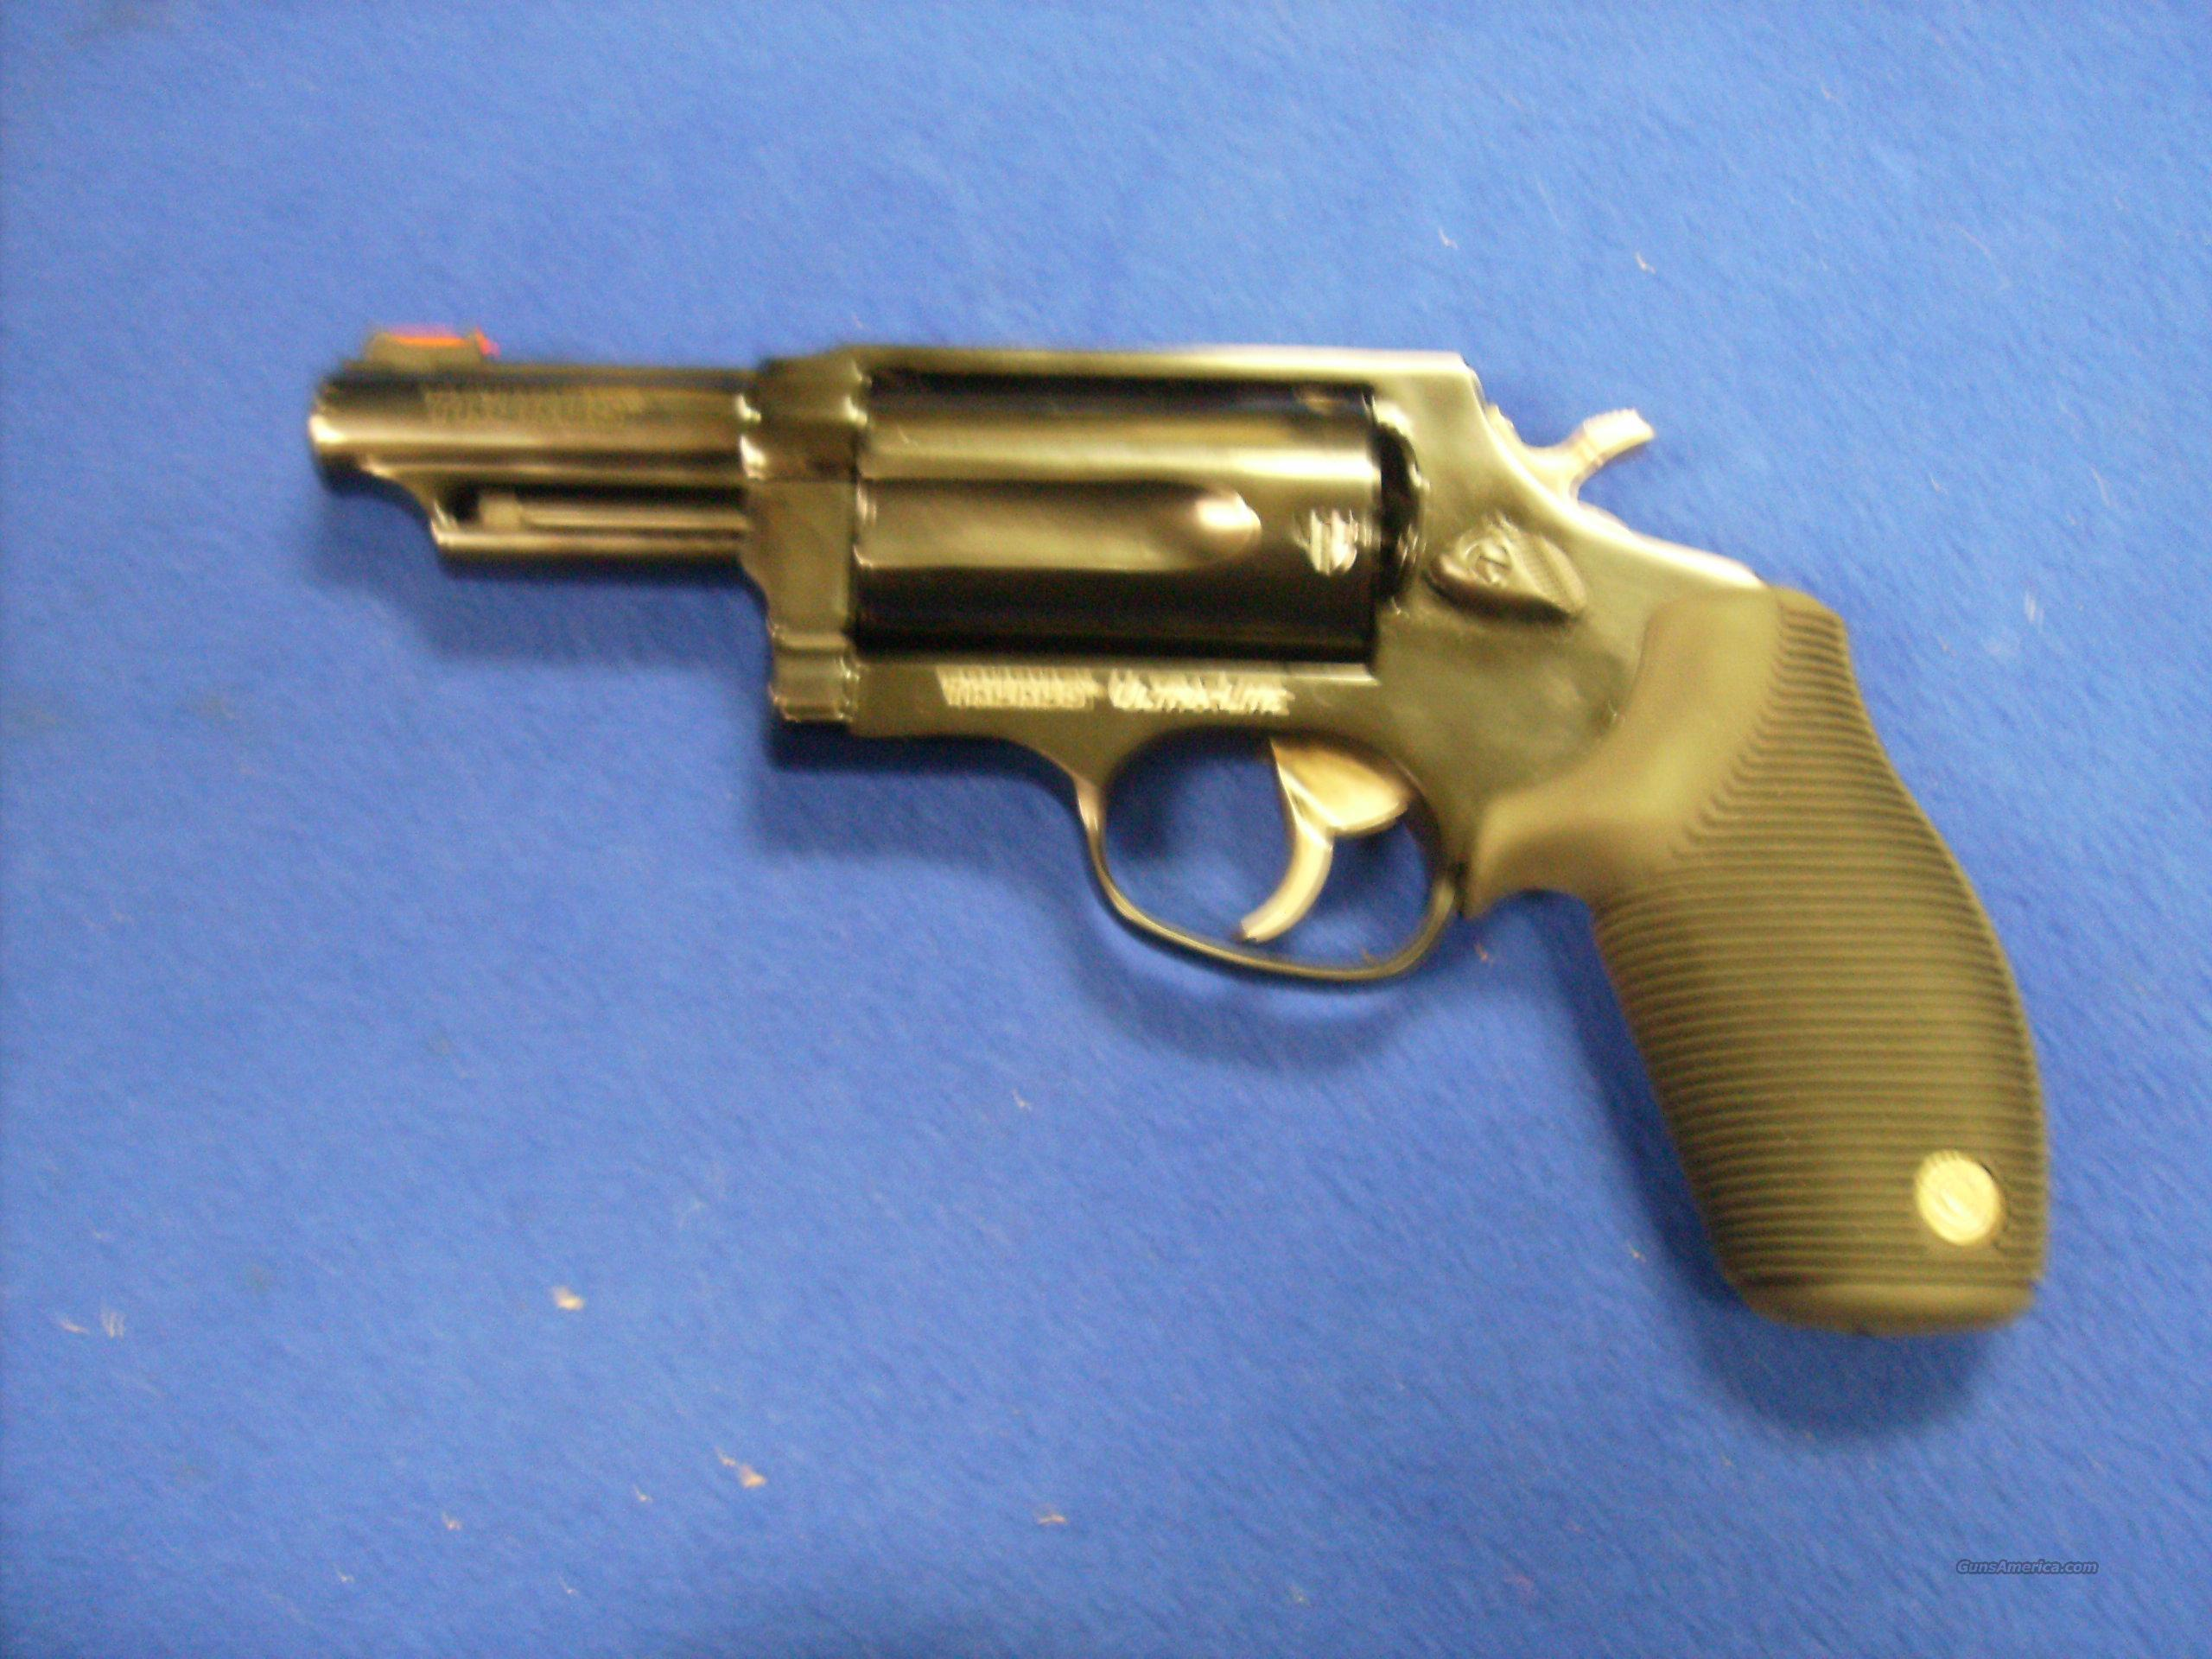 Taurus Judge 45/410 Ultralite Blued 3in barrel  Guns > Pistols > Taurus Pistols/Revolvers > Revolvers